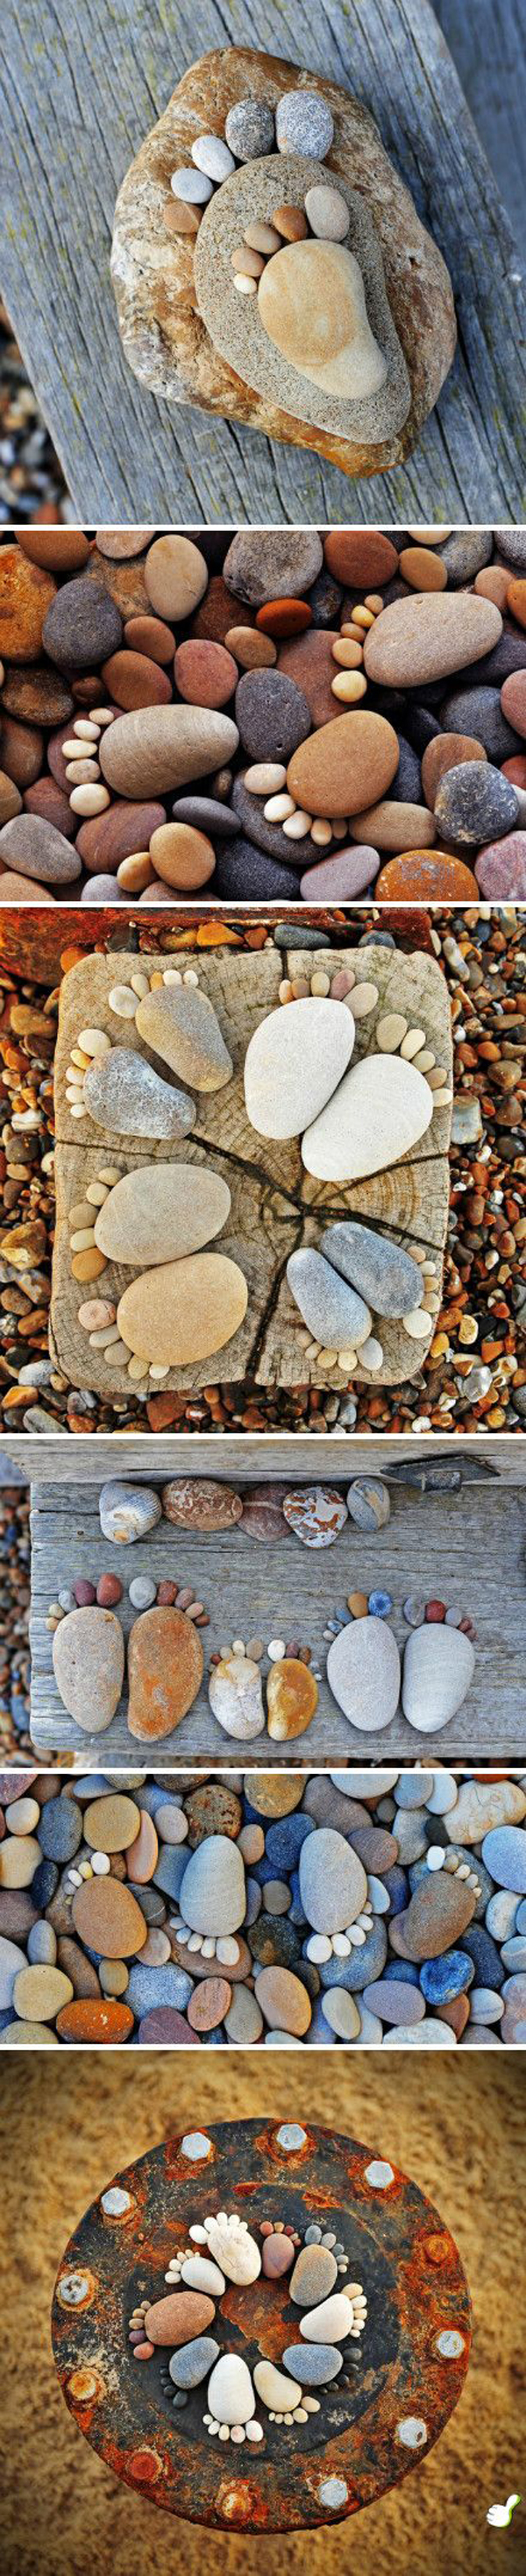 15 easy diy garden projects with rocks and stones home for Diy stone projects